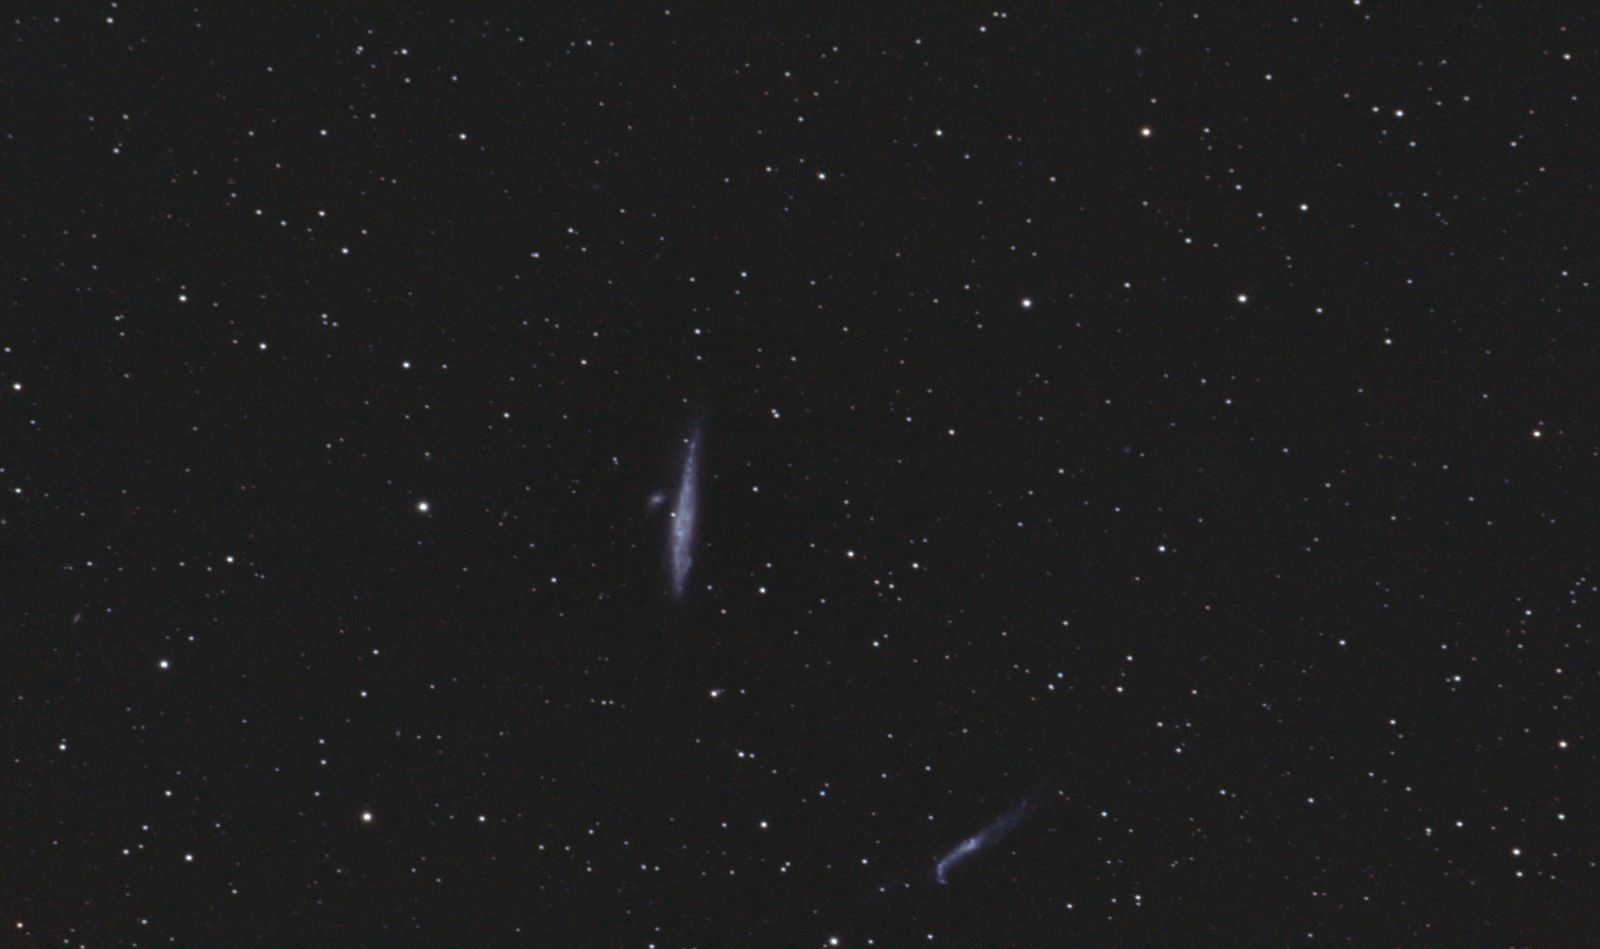 DSO Galaxies